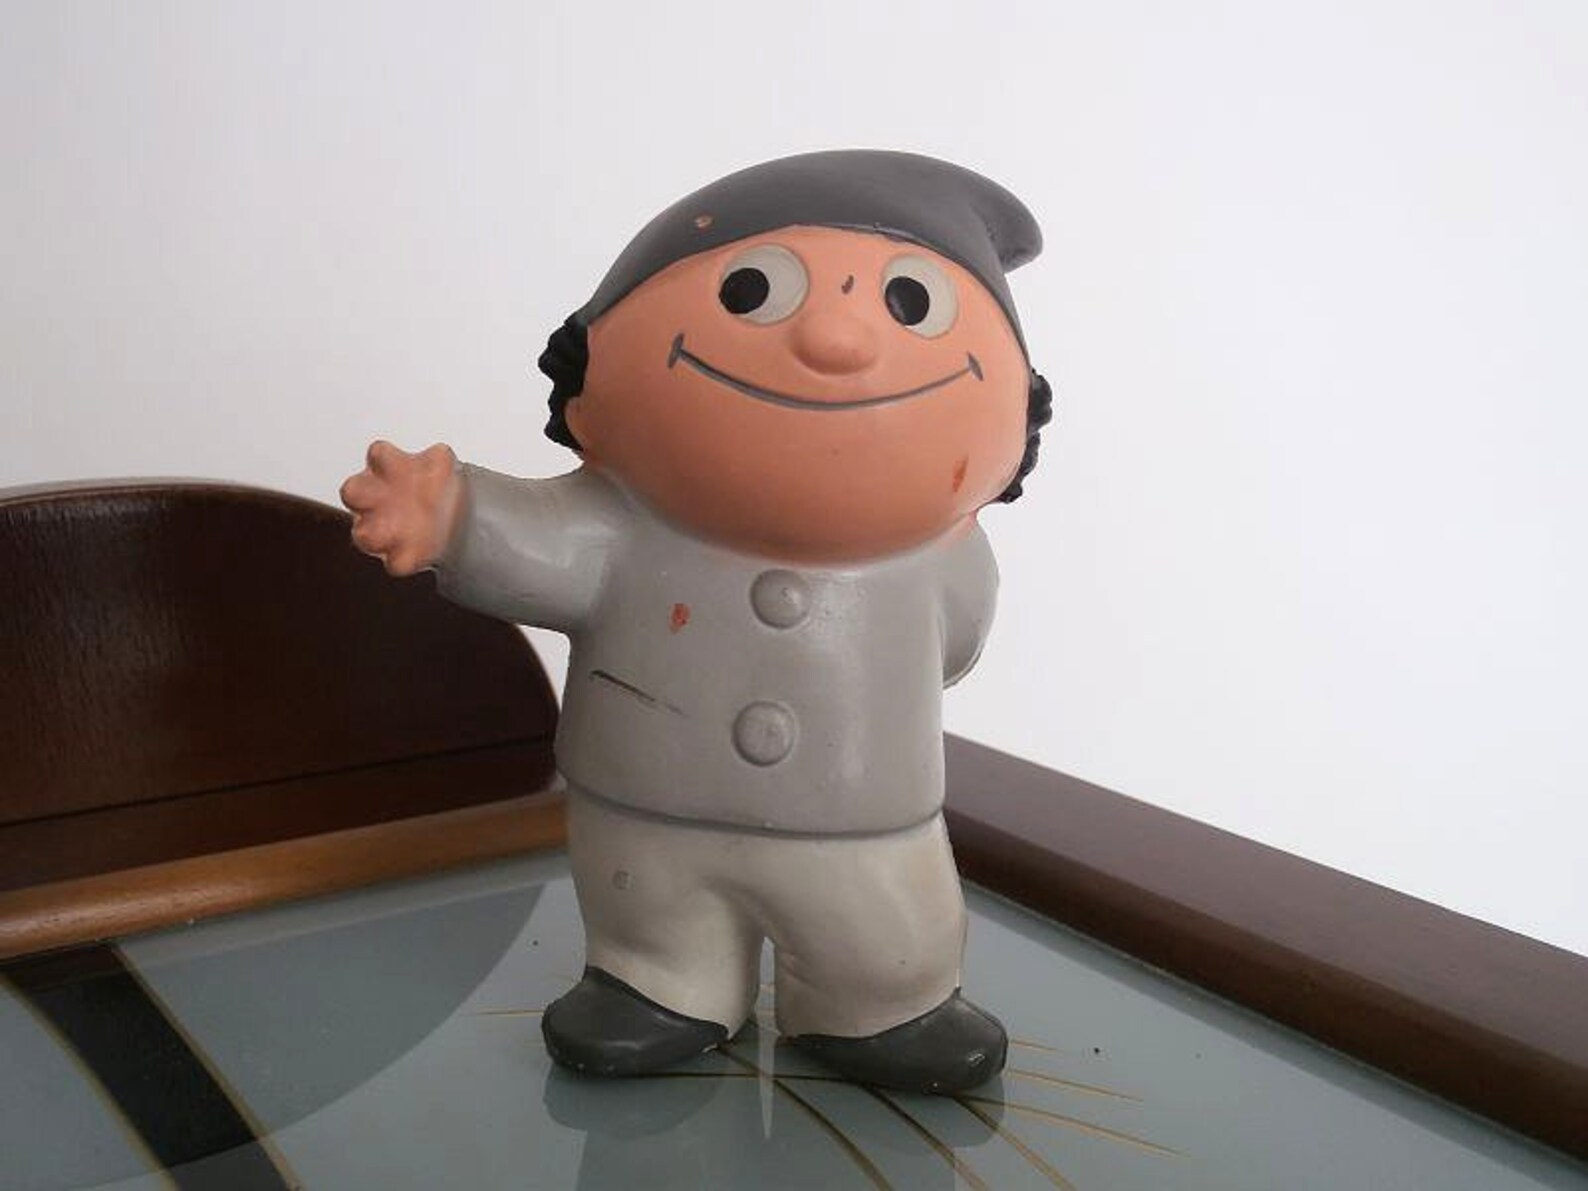 Mainzelmännchen, German television ZDF promotional advertising figure